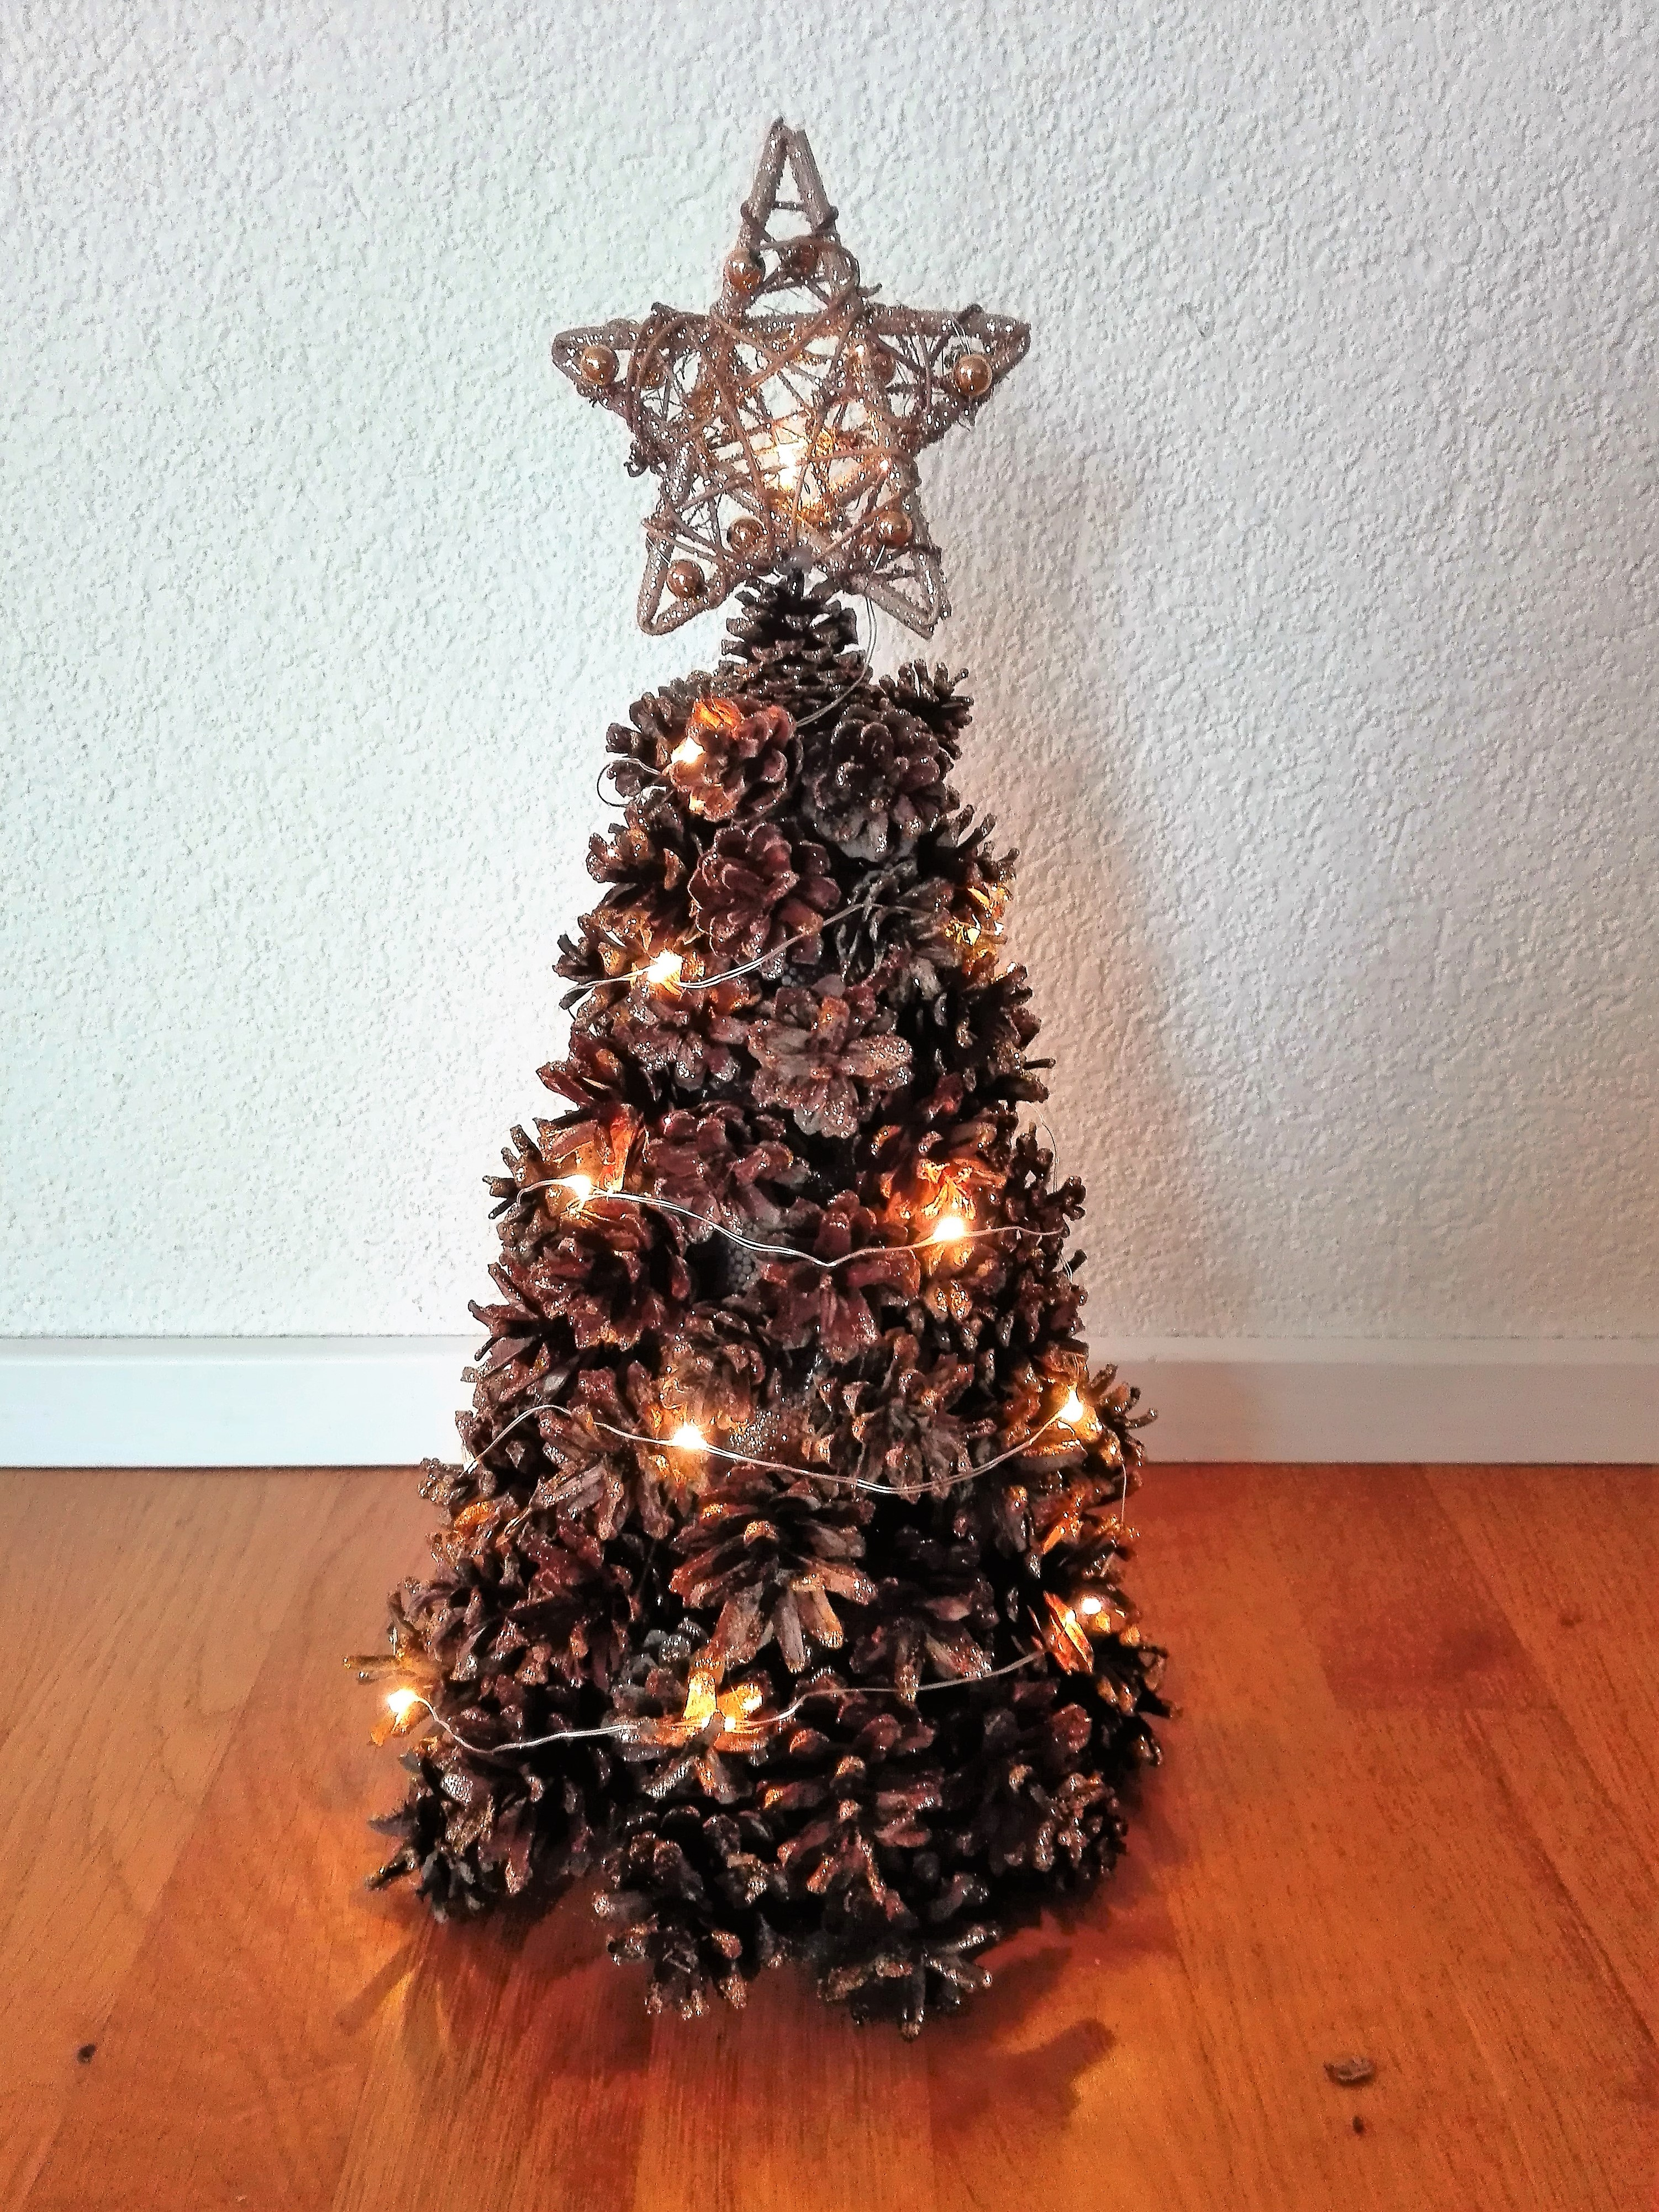 DIY: Lighted pinecone Christmas tree - Our Swiss experience